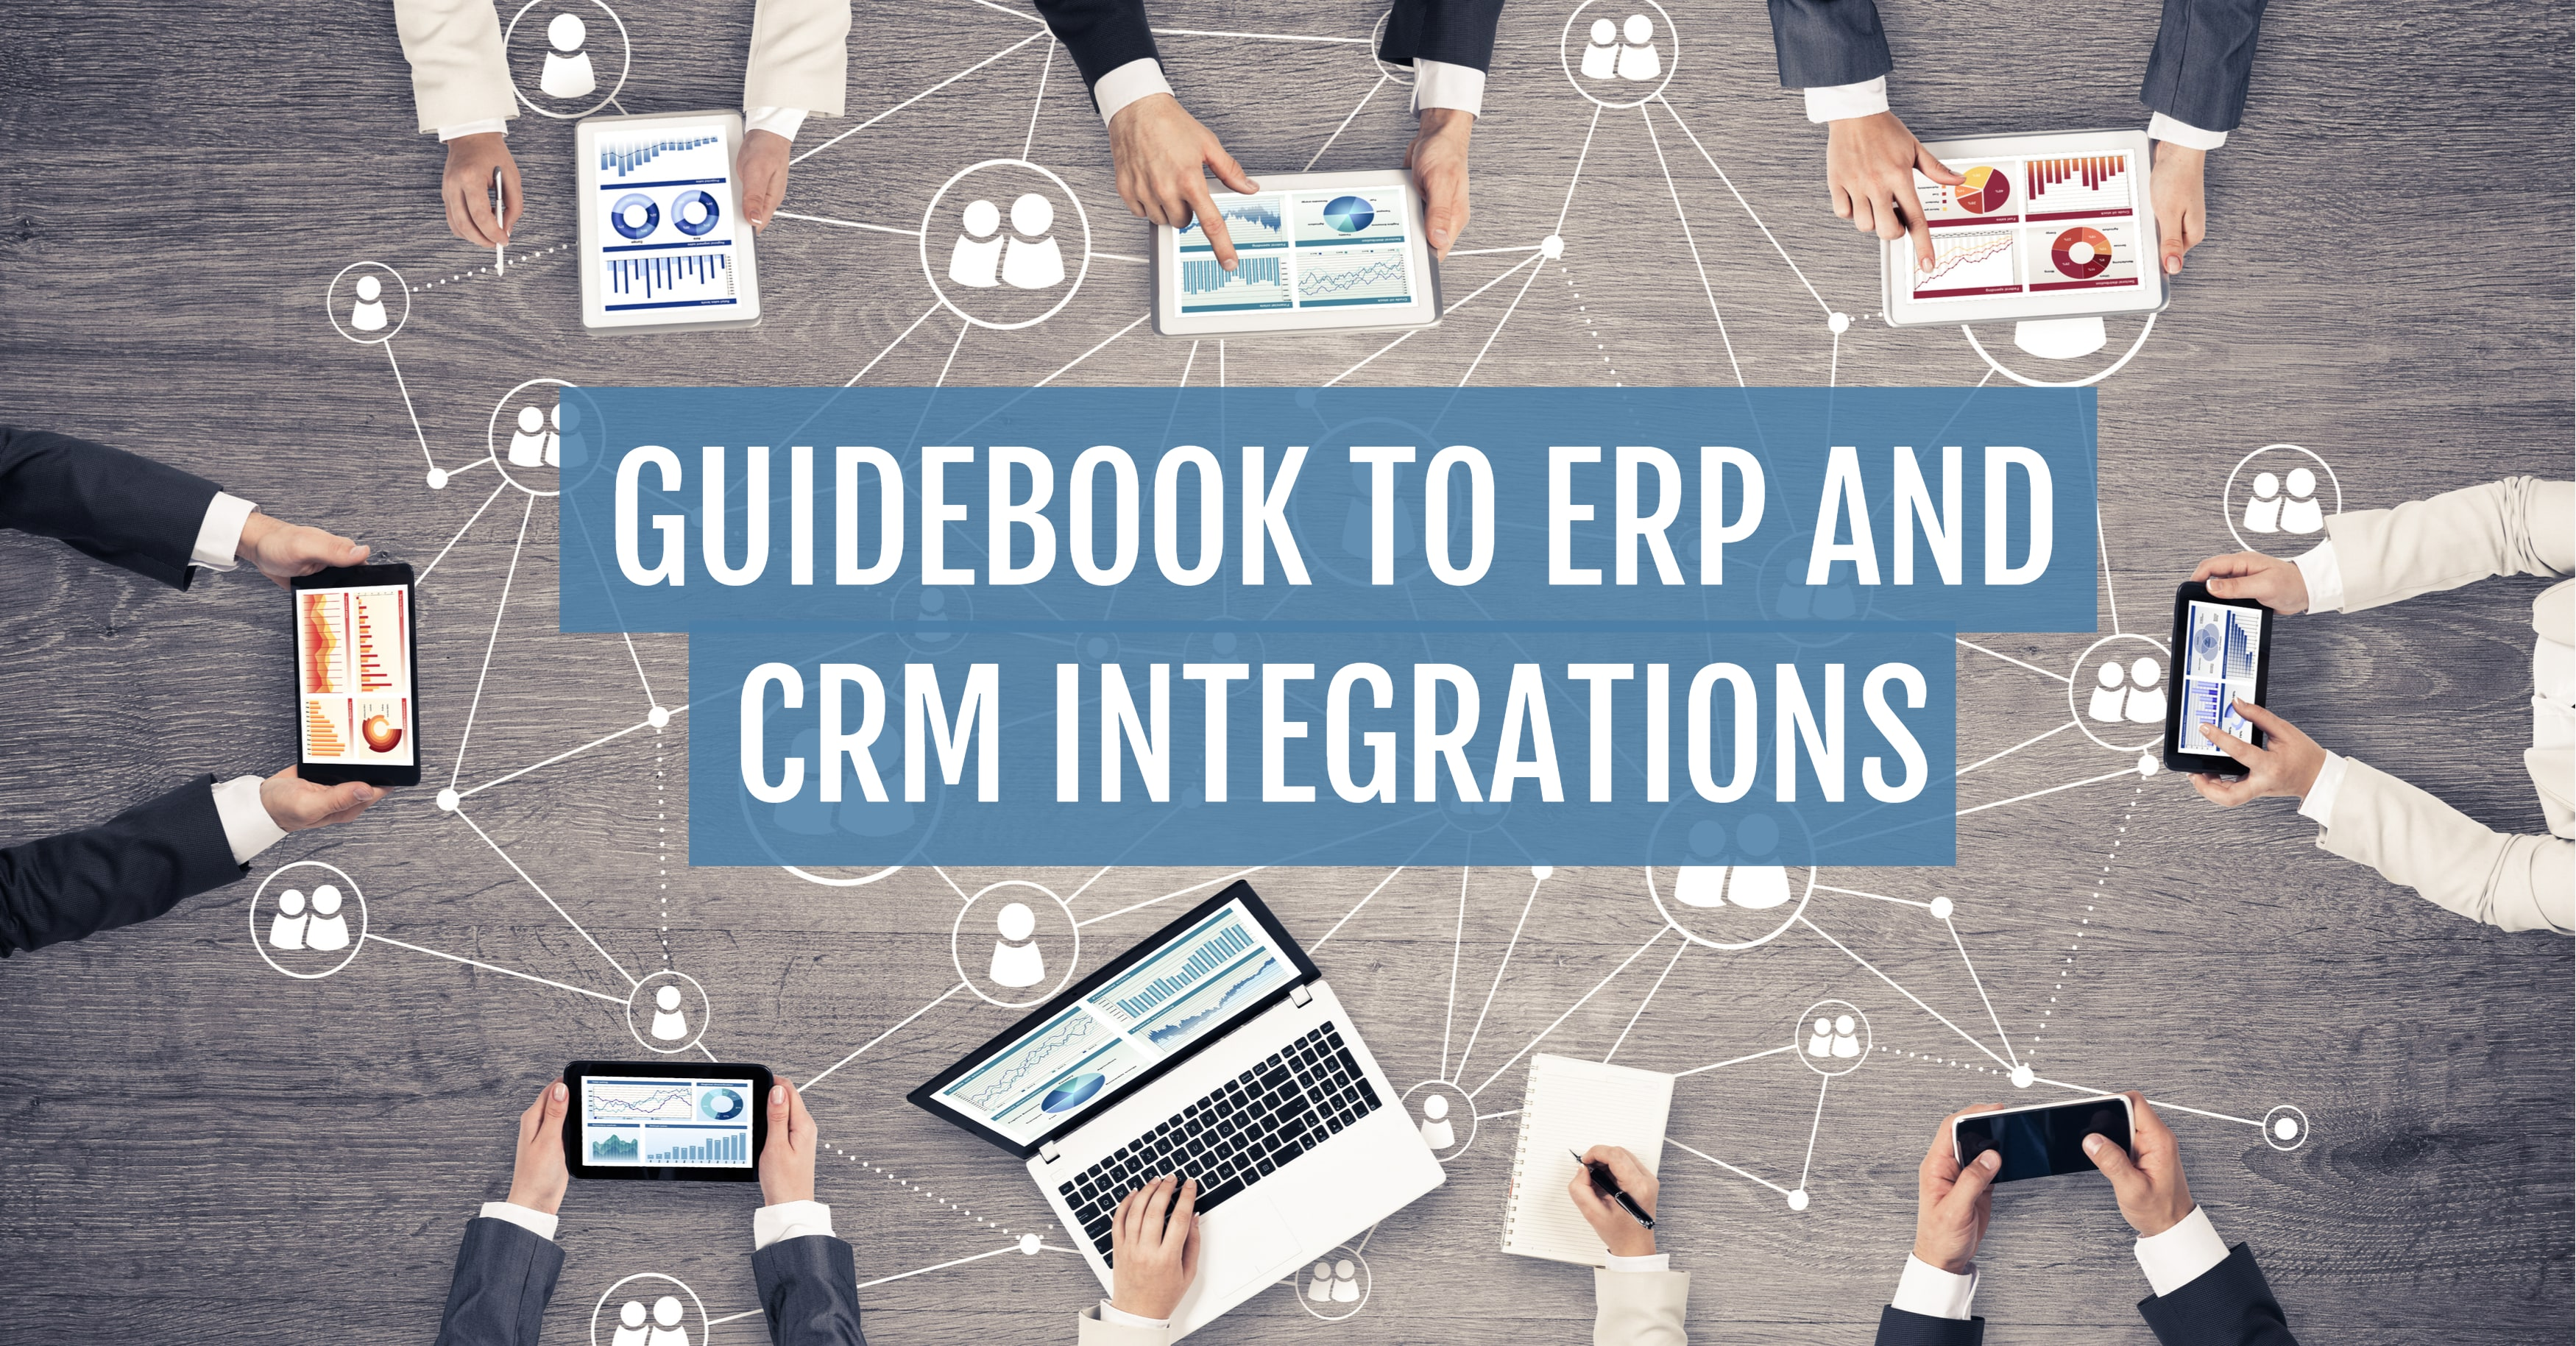 Guidebook to ERP and CRM Integrations